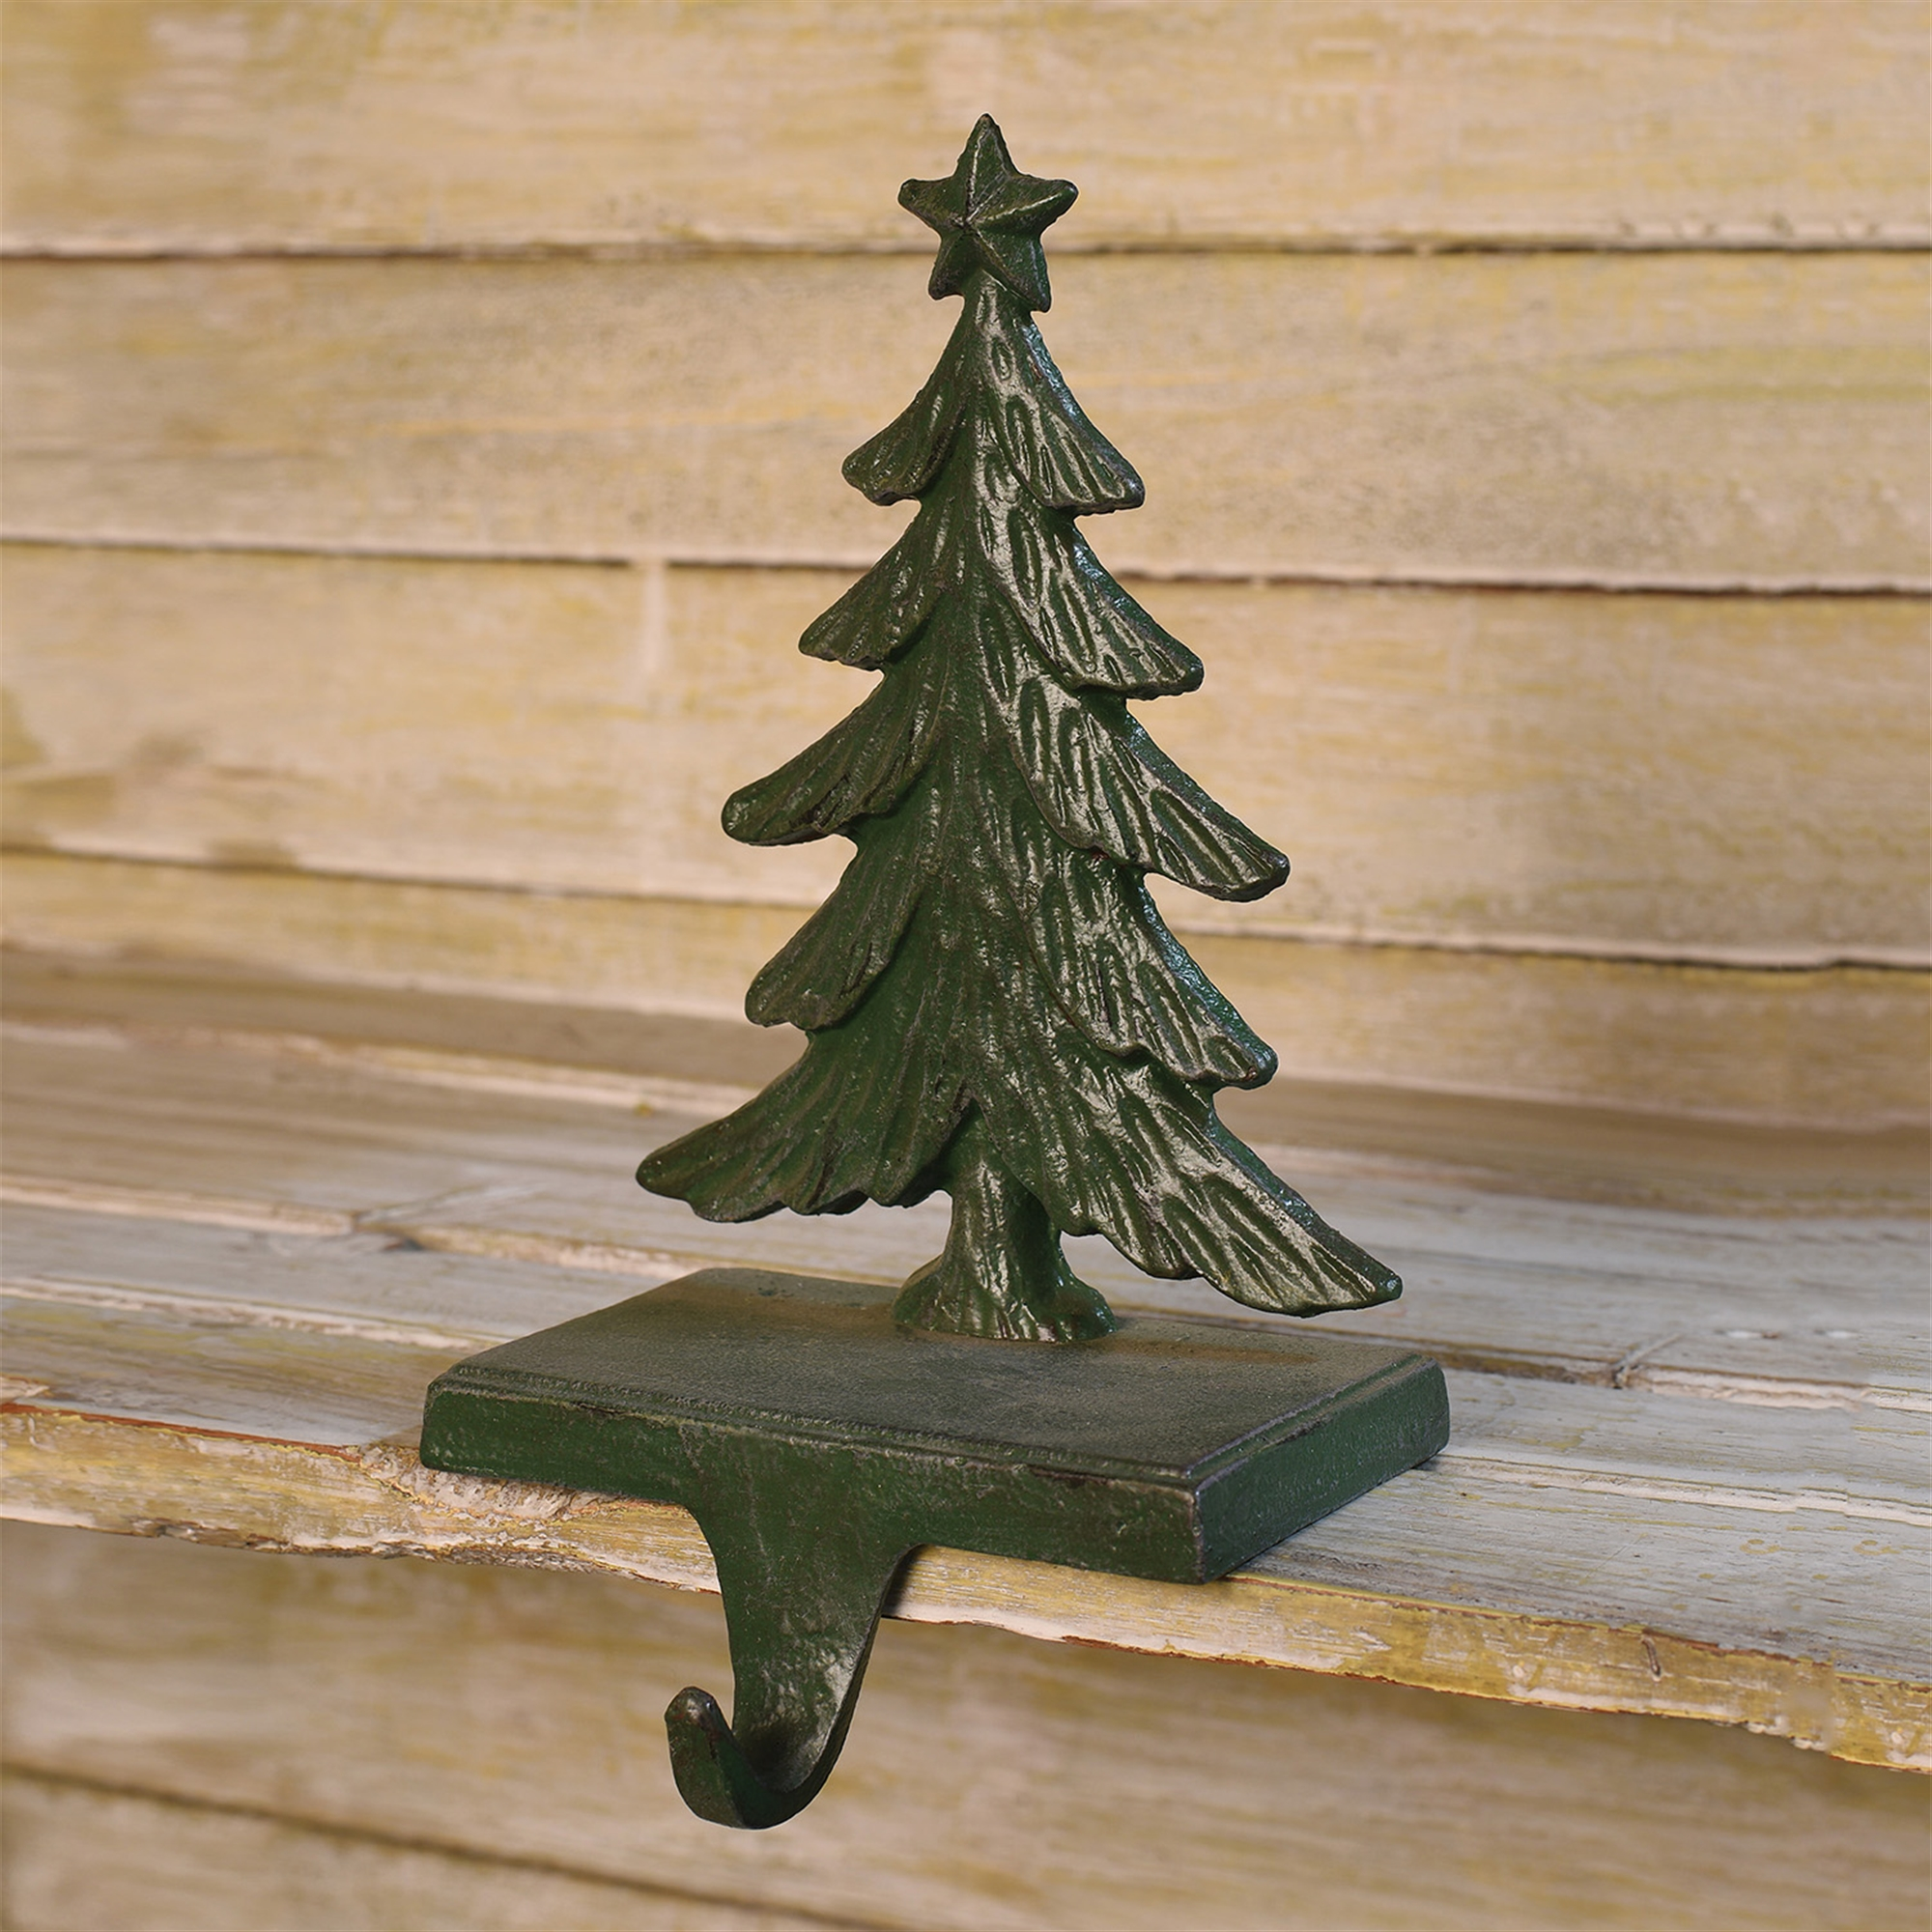 21096-3 - Christmas Tree Stocking Holder - Cast Iron - Antique Green by HomArt